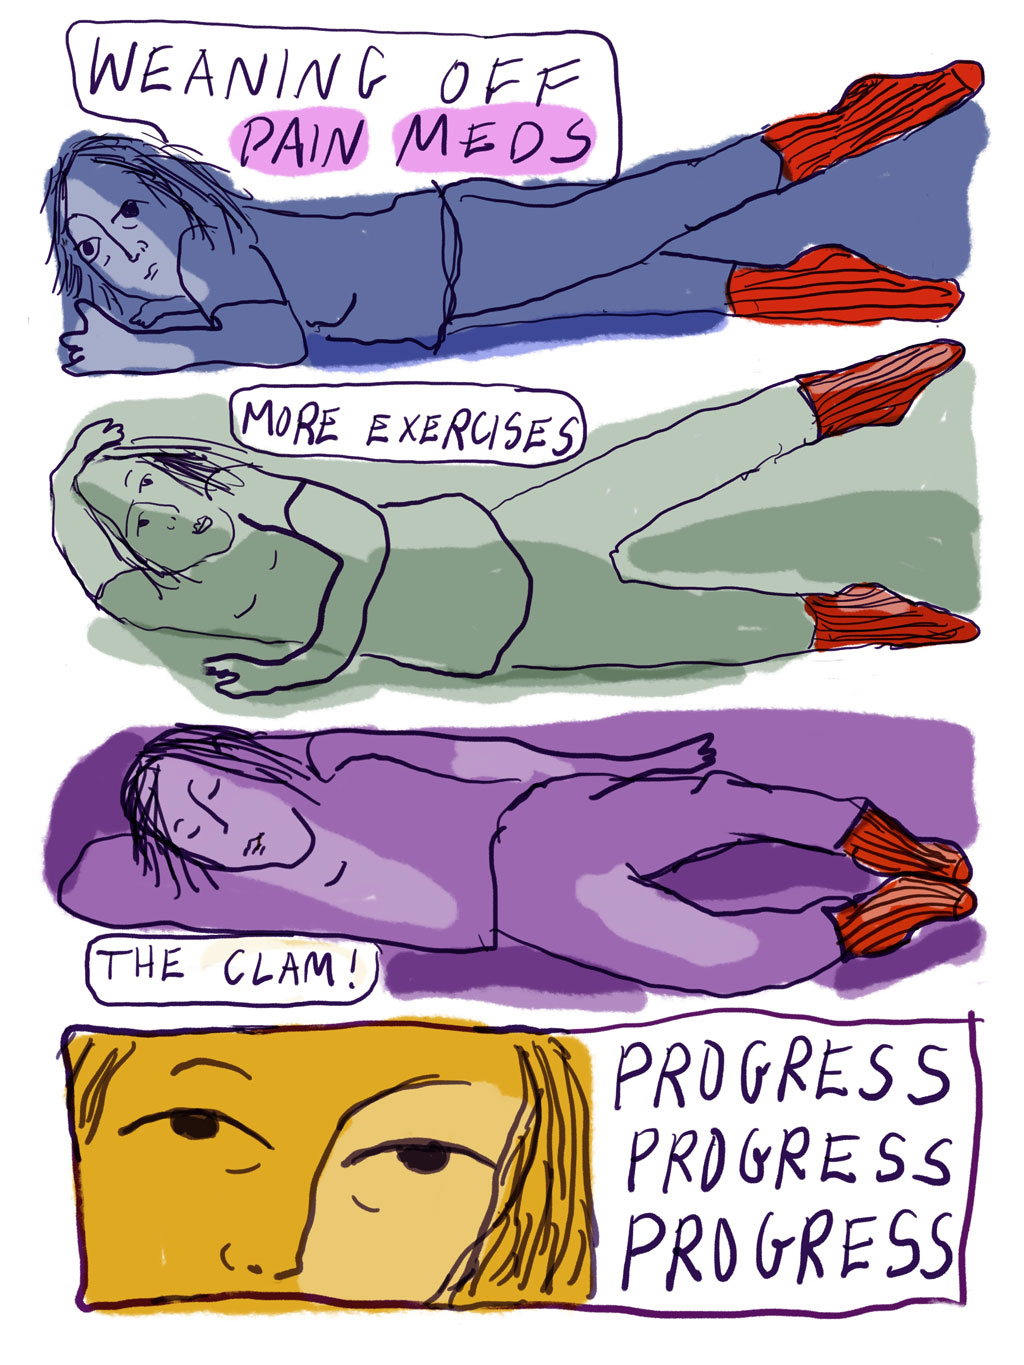 Panel 21: Weaning off pain meds. More exercises. The clam! Progress, progress, progress.